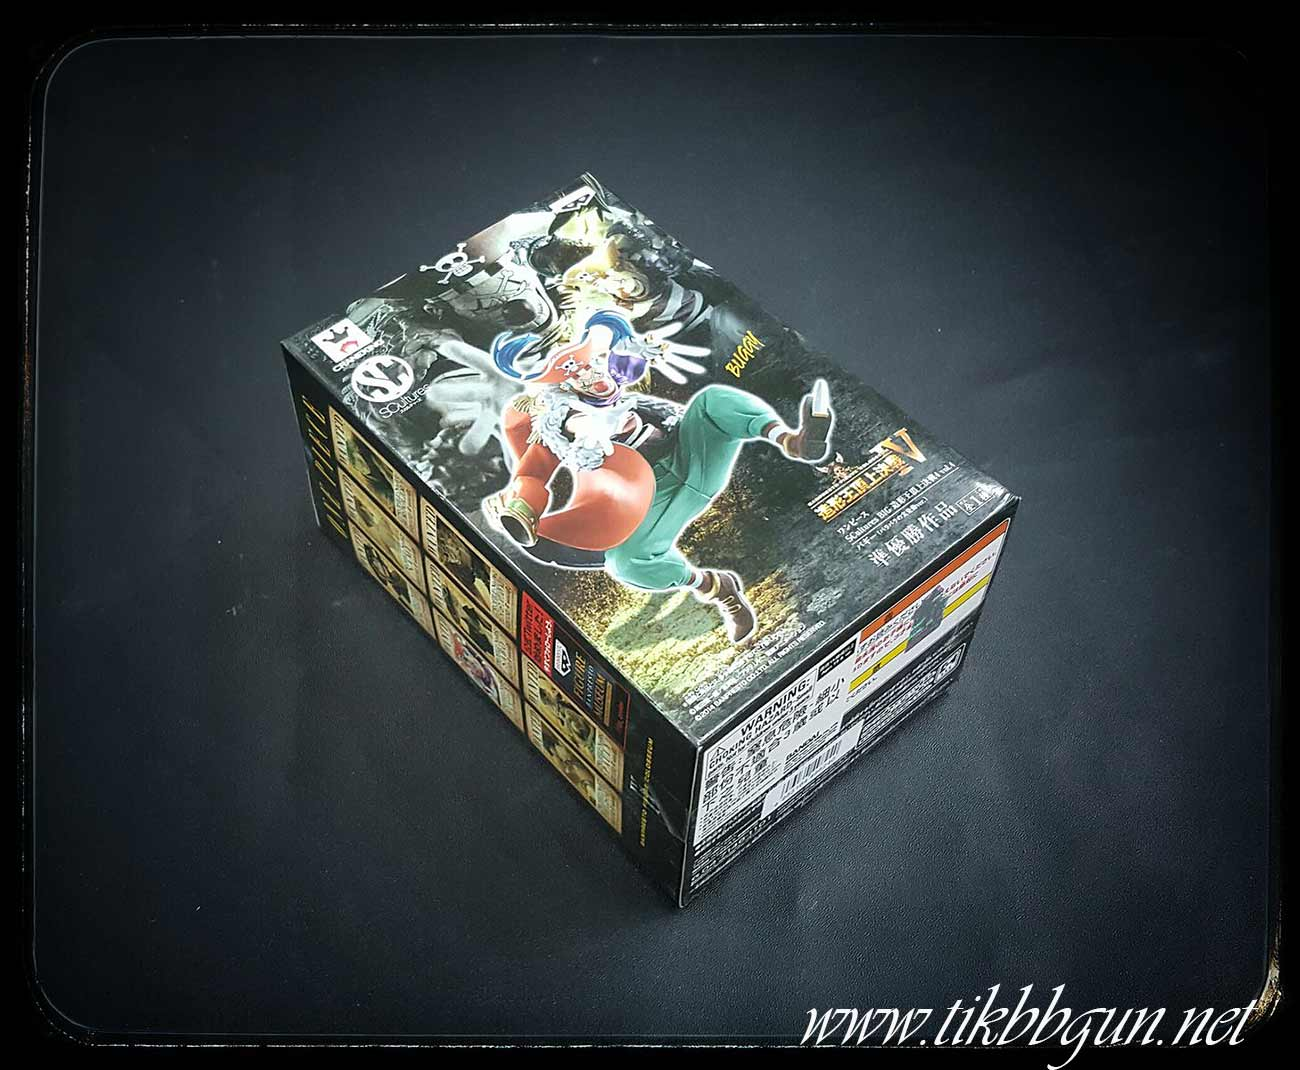 หุ่นฟิกเกอร์ One Piece - SCultures BIG Zoukeiou Chojho Kessen 4 vol.4 Buggy